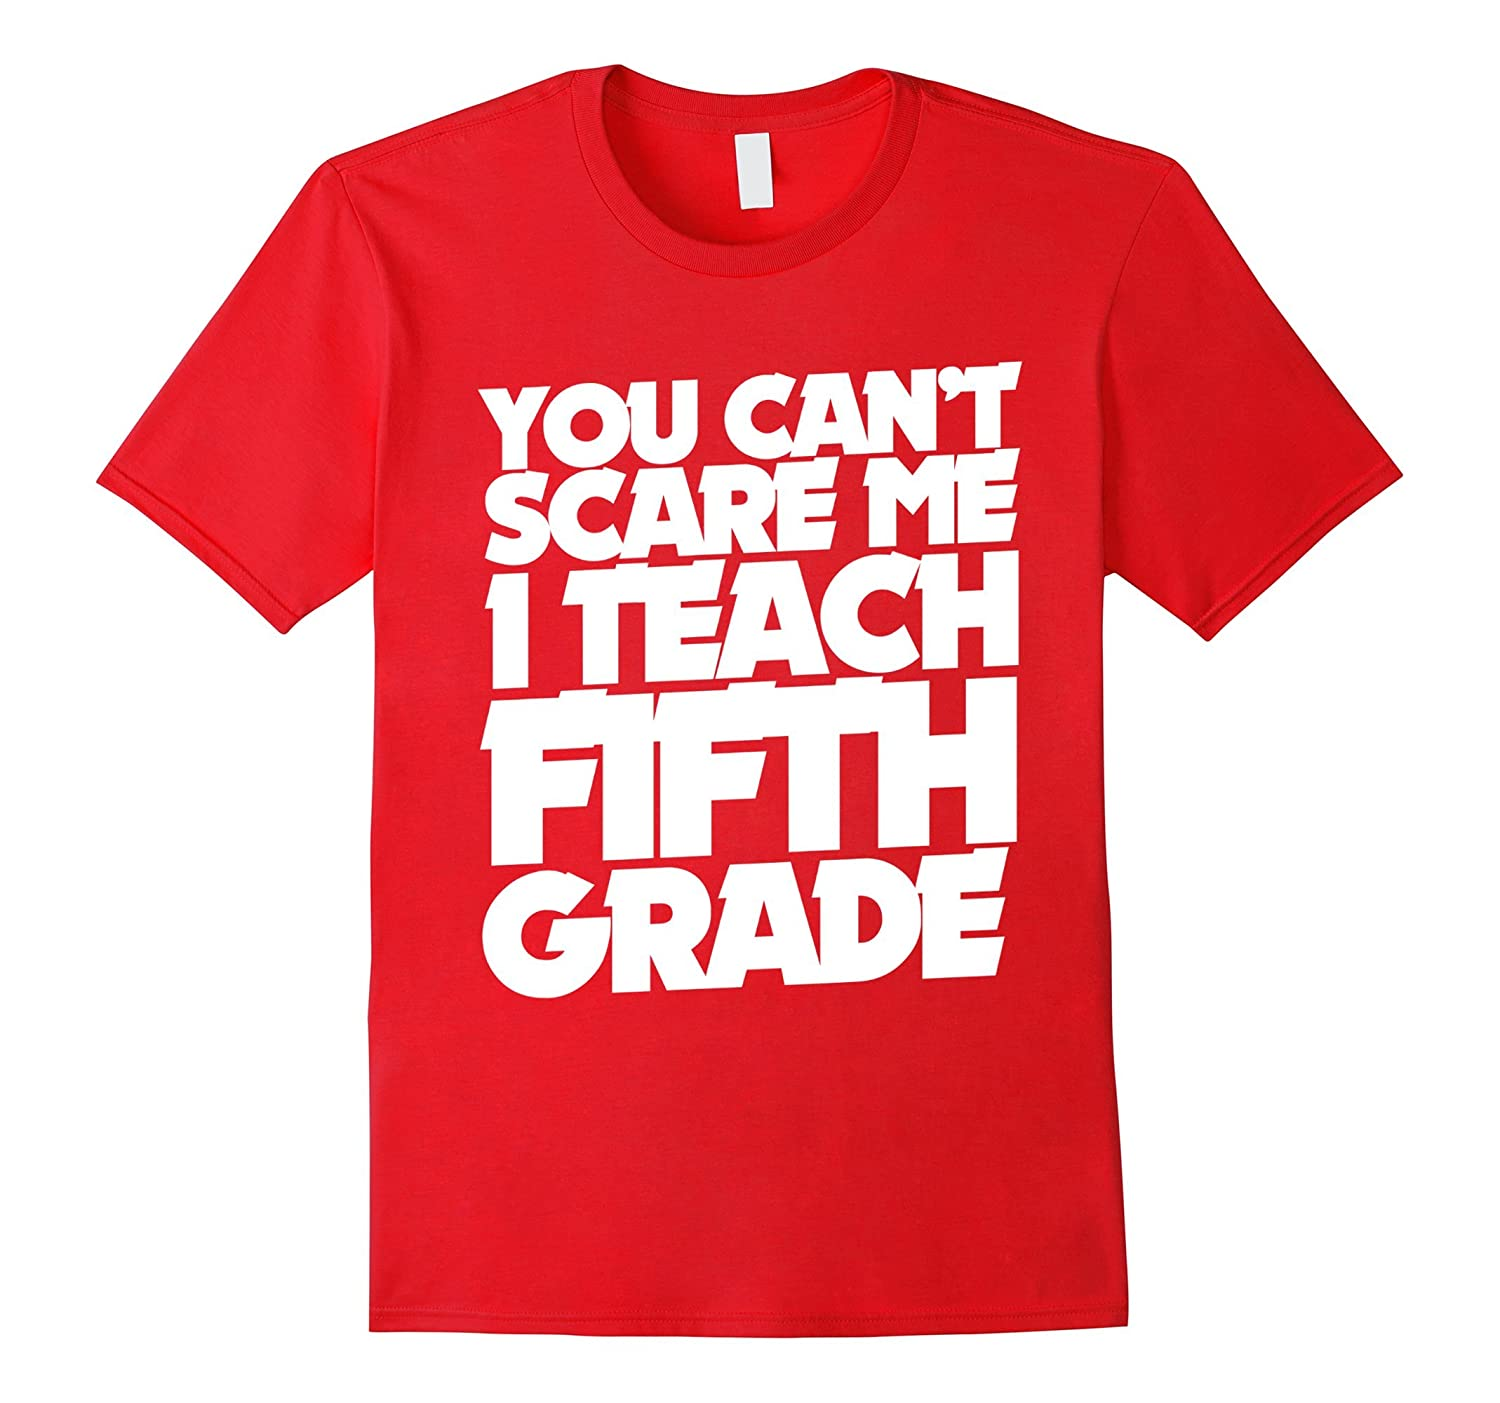 You can't scare me I teach fifth grade shirt 5th grade-Art